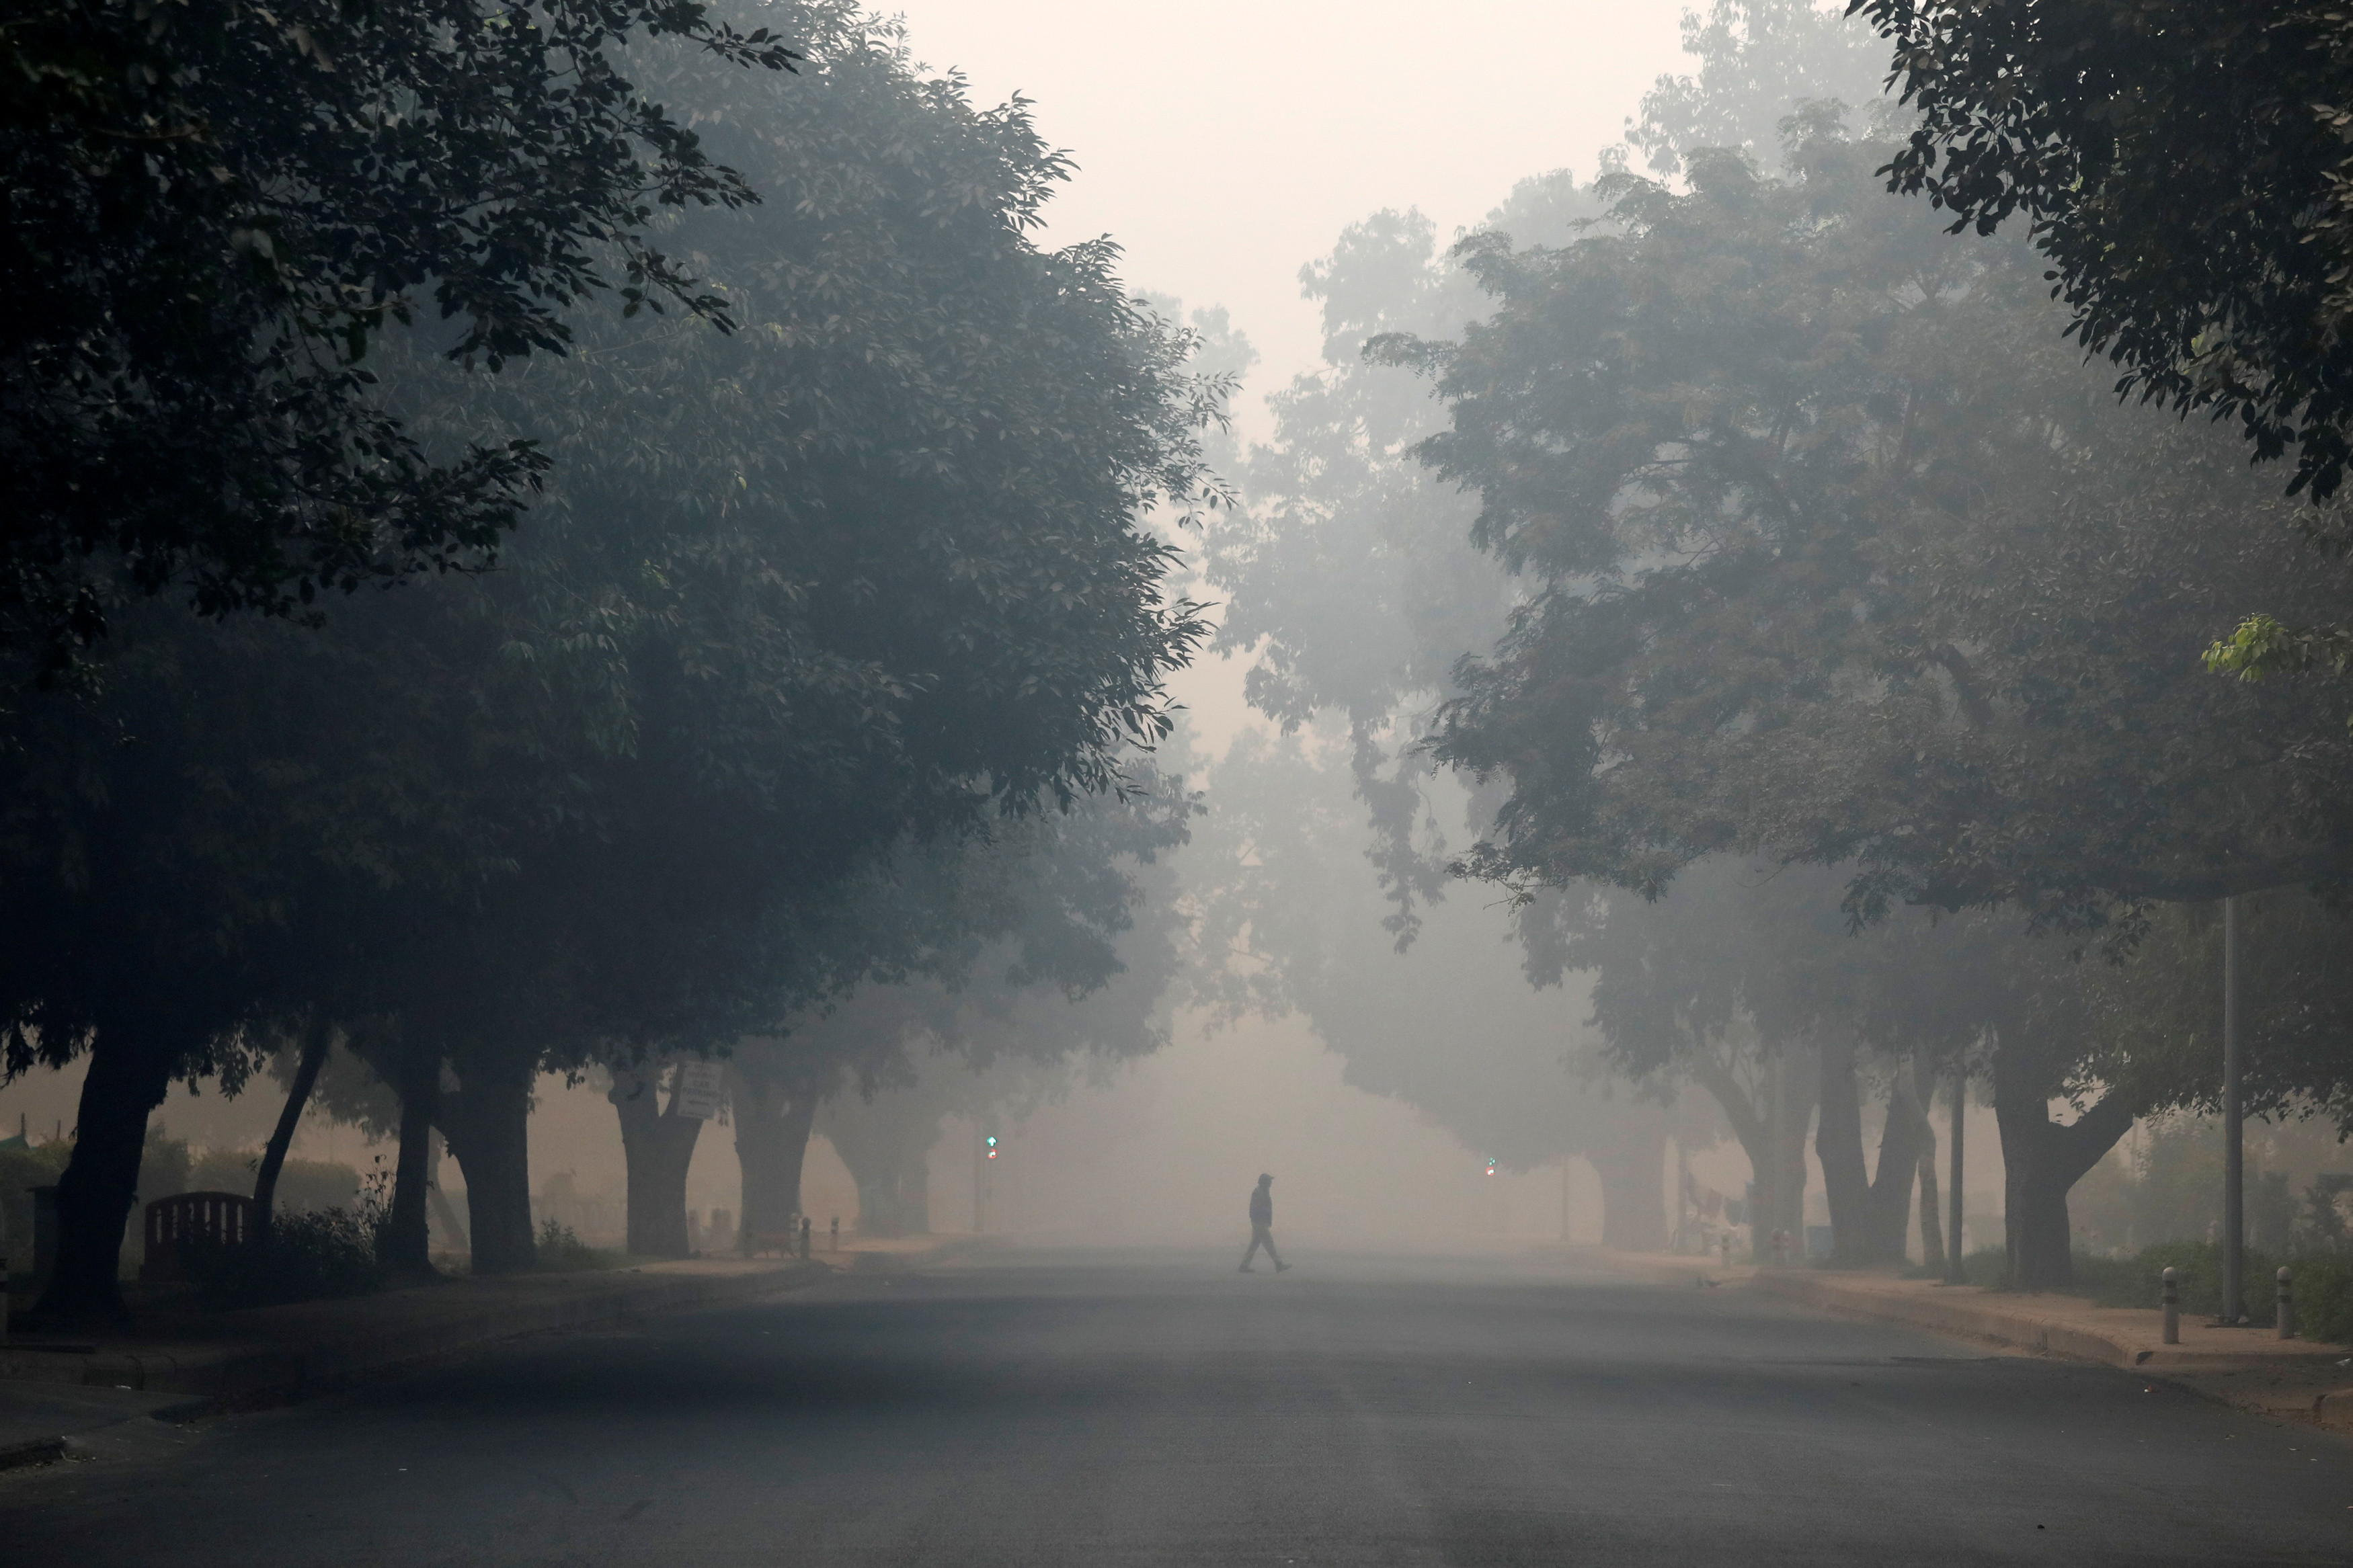 A man crosses a road on a smoggy morning in New Delhi, India, November 8, 2018